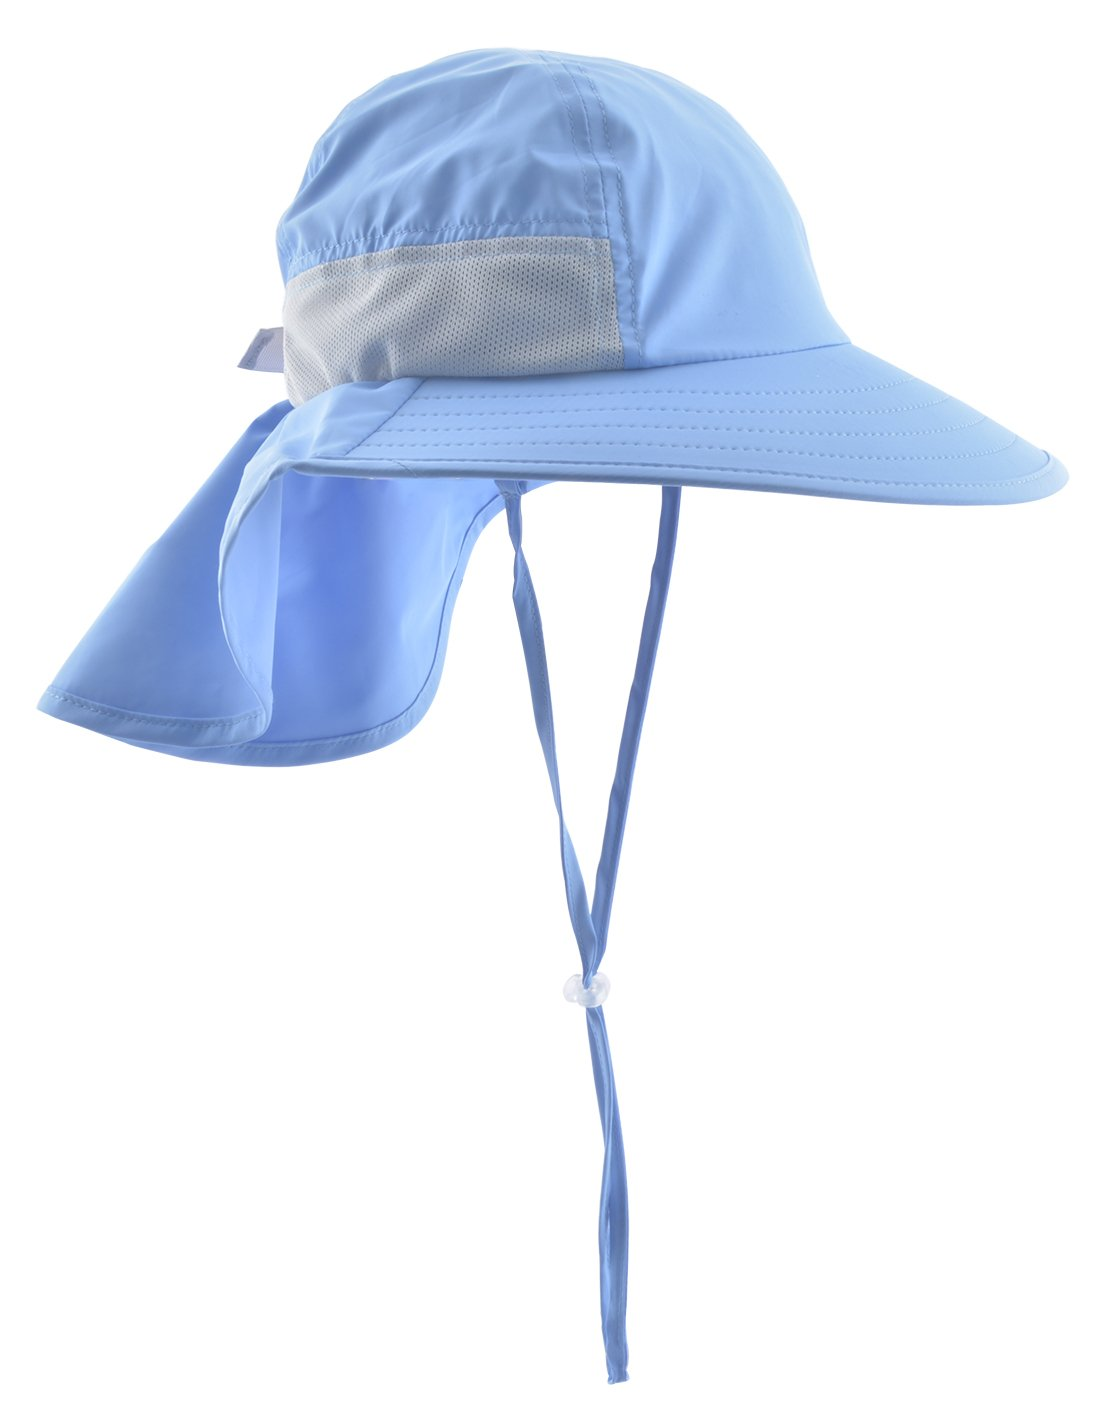 Lenikis Kids Outdoor Activities UV Protecting Sun Hats with Neck Flap Blue